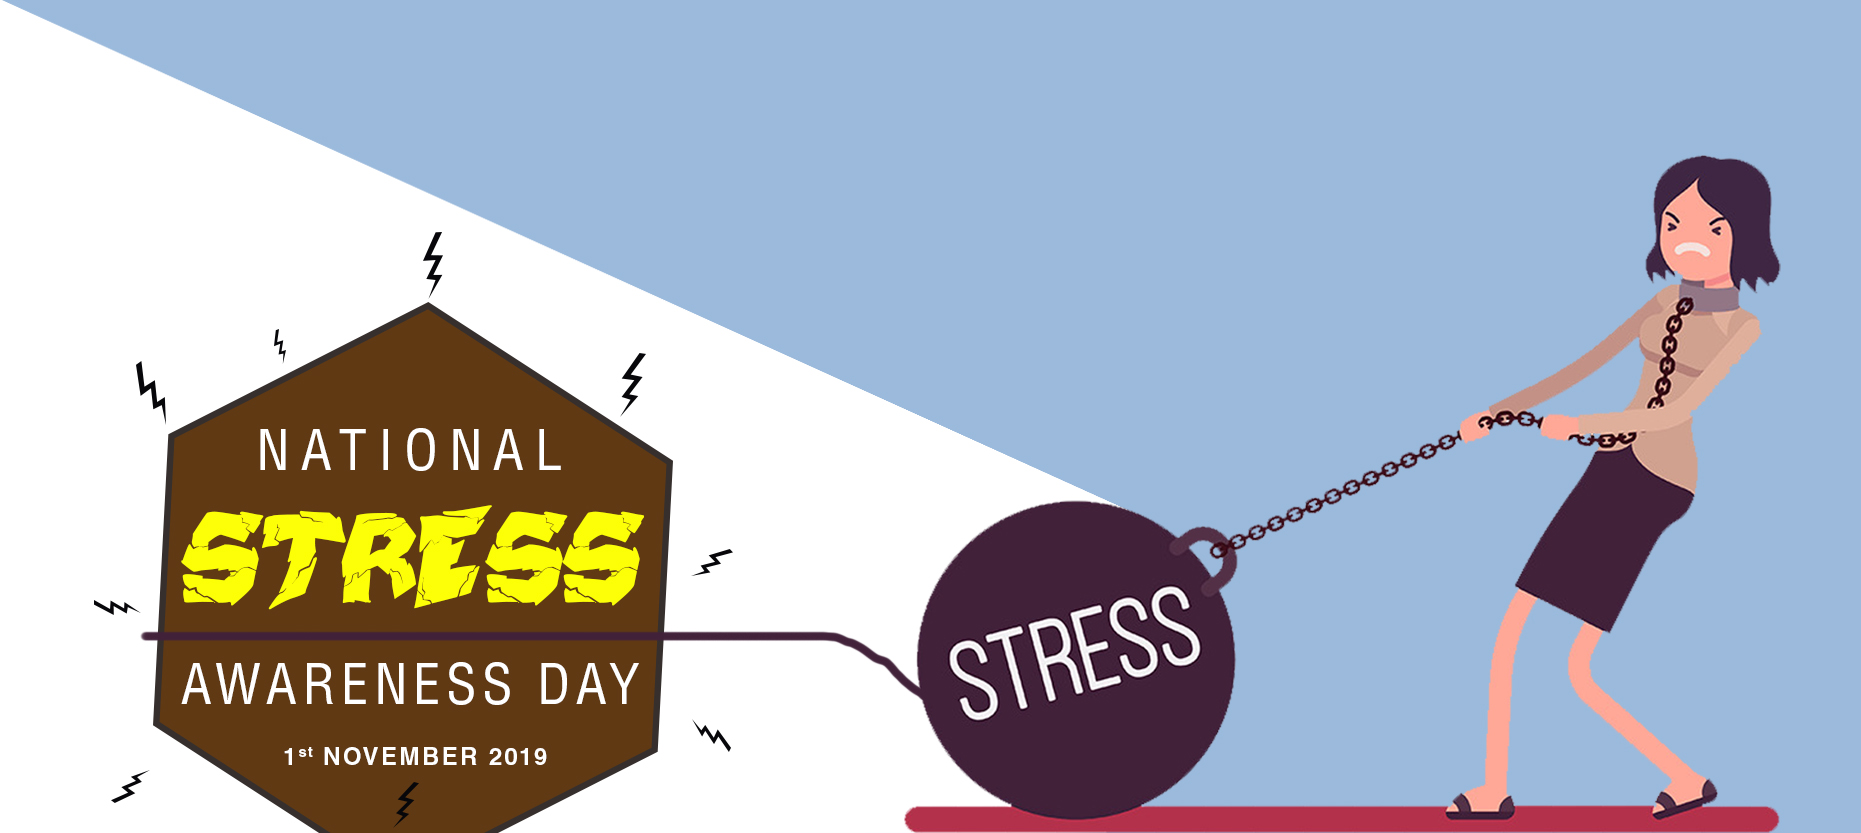 National Stress Awareness Day- First Aid for Stress